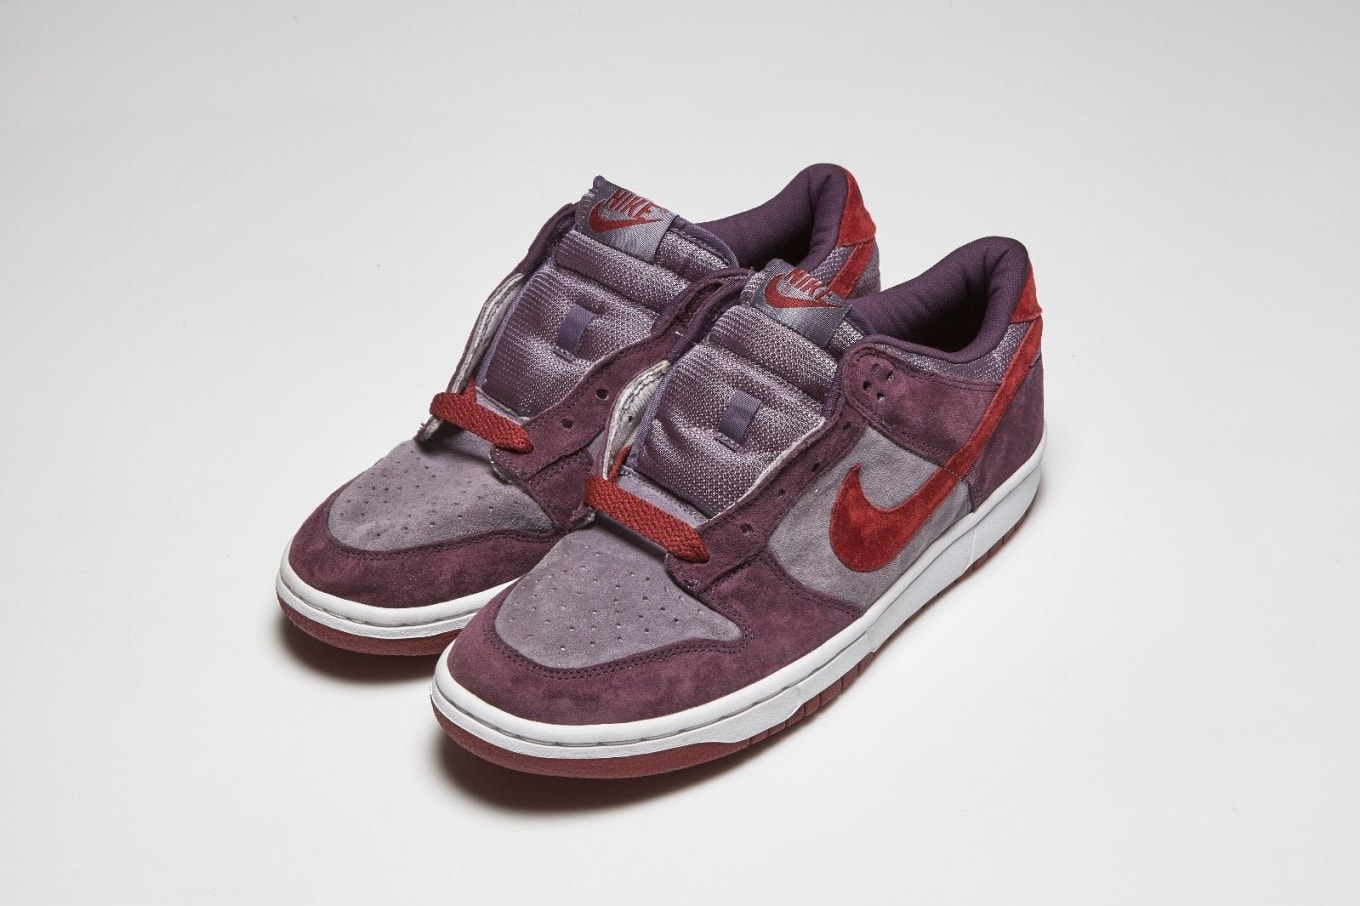 cheap for discount 2a641 7ec33 Nike Dunk Low Pro Plum